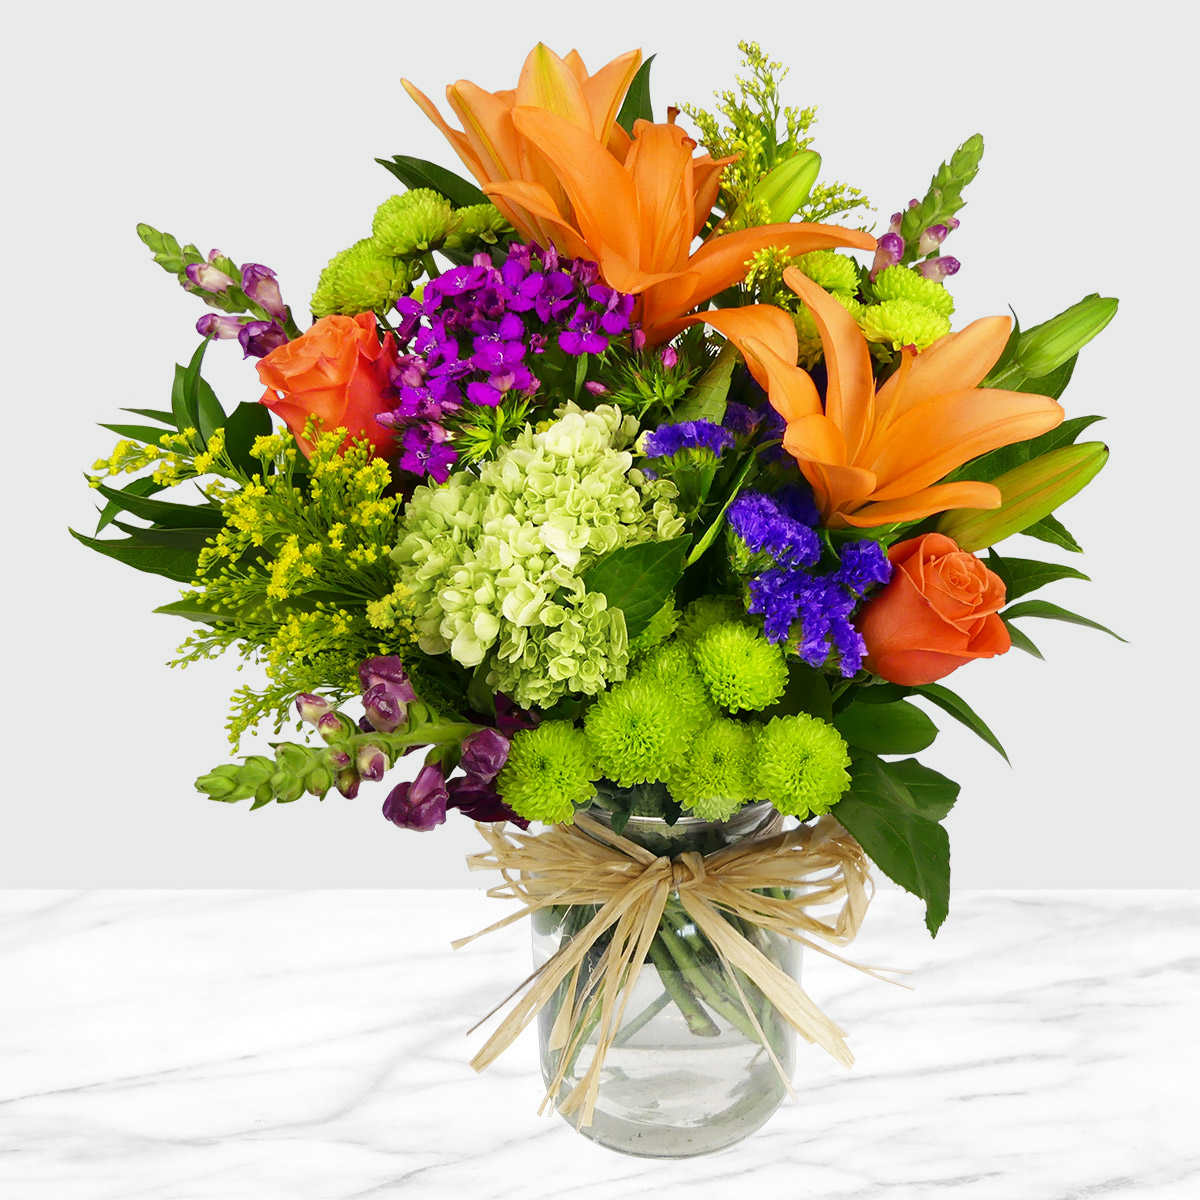 vase arrangements | costco